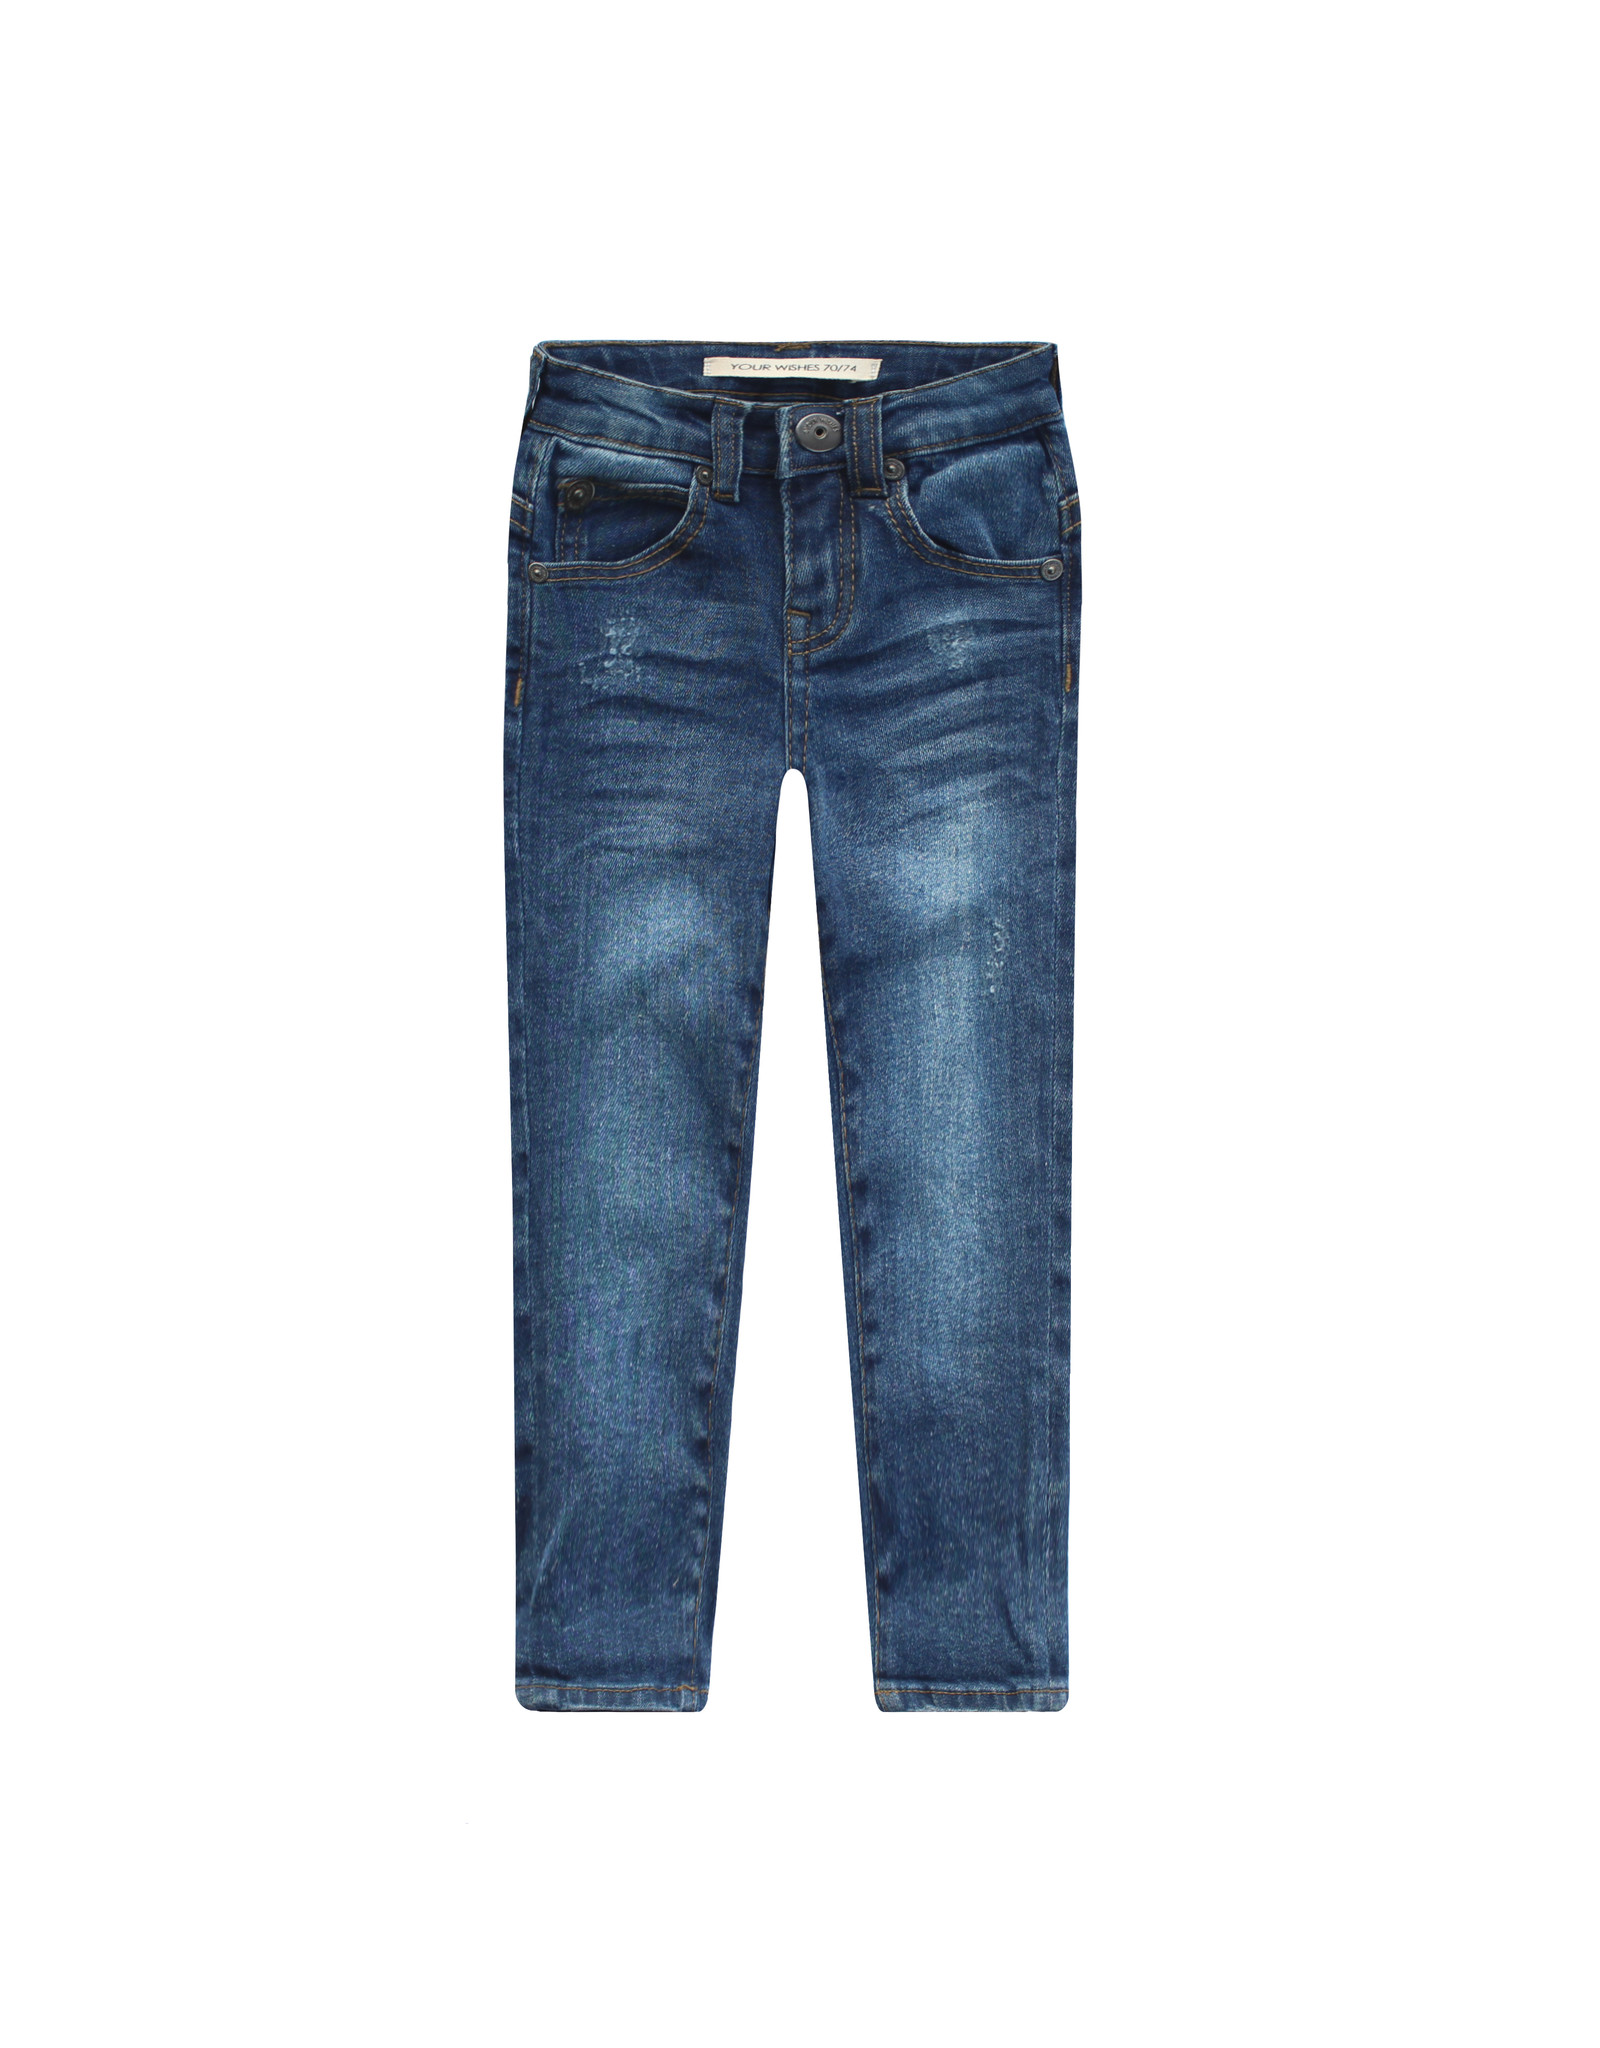 Your Wishes Your Wishes Denim Slim Fit Medium Blue